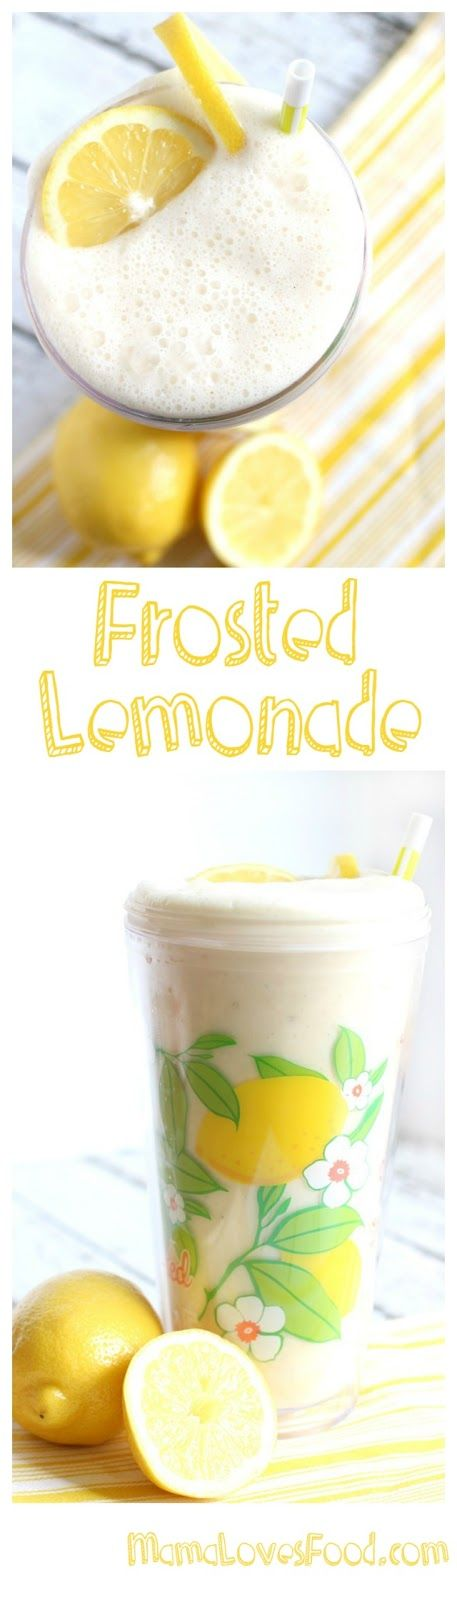 Frosted Lemonade!  I LOVE these at Chick-fil-a!!!